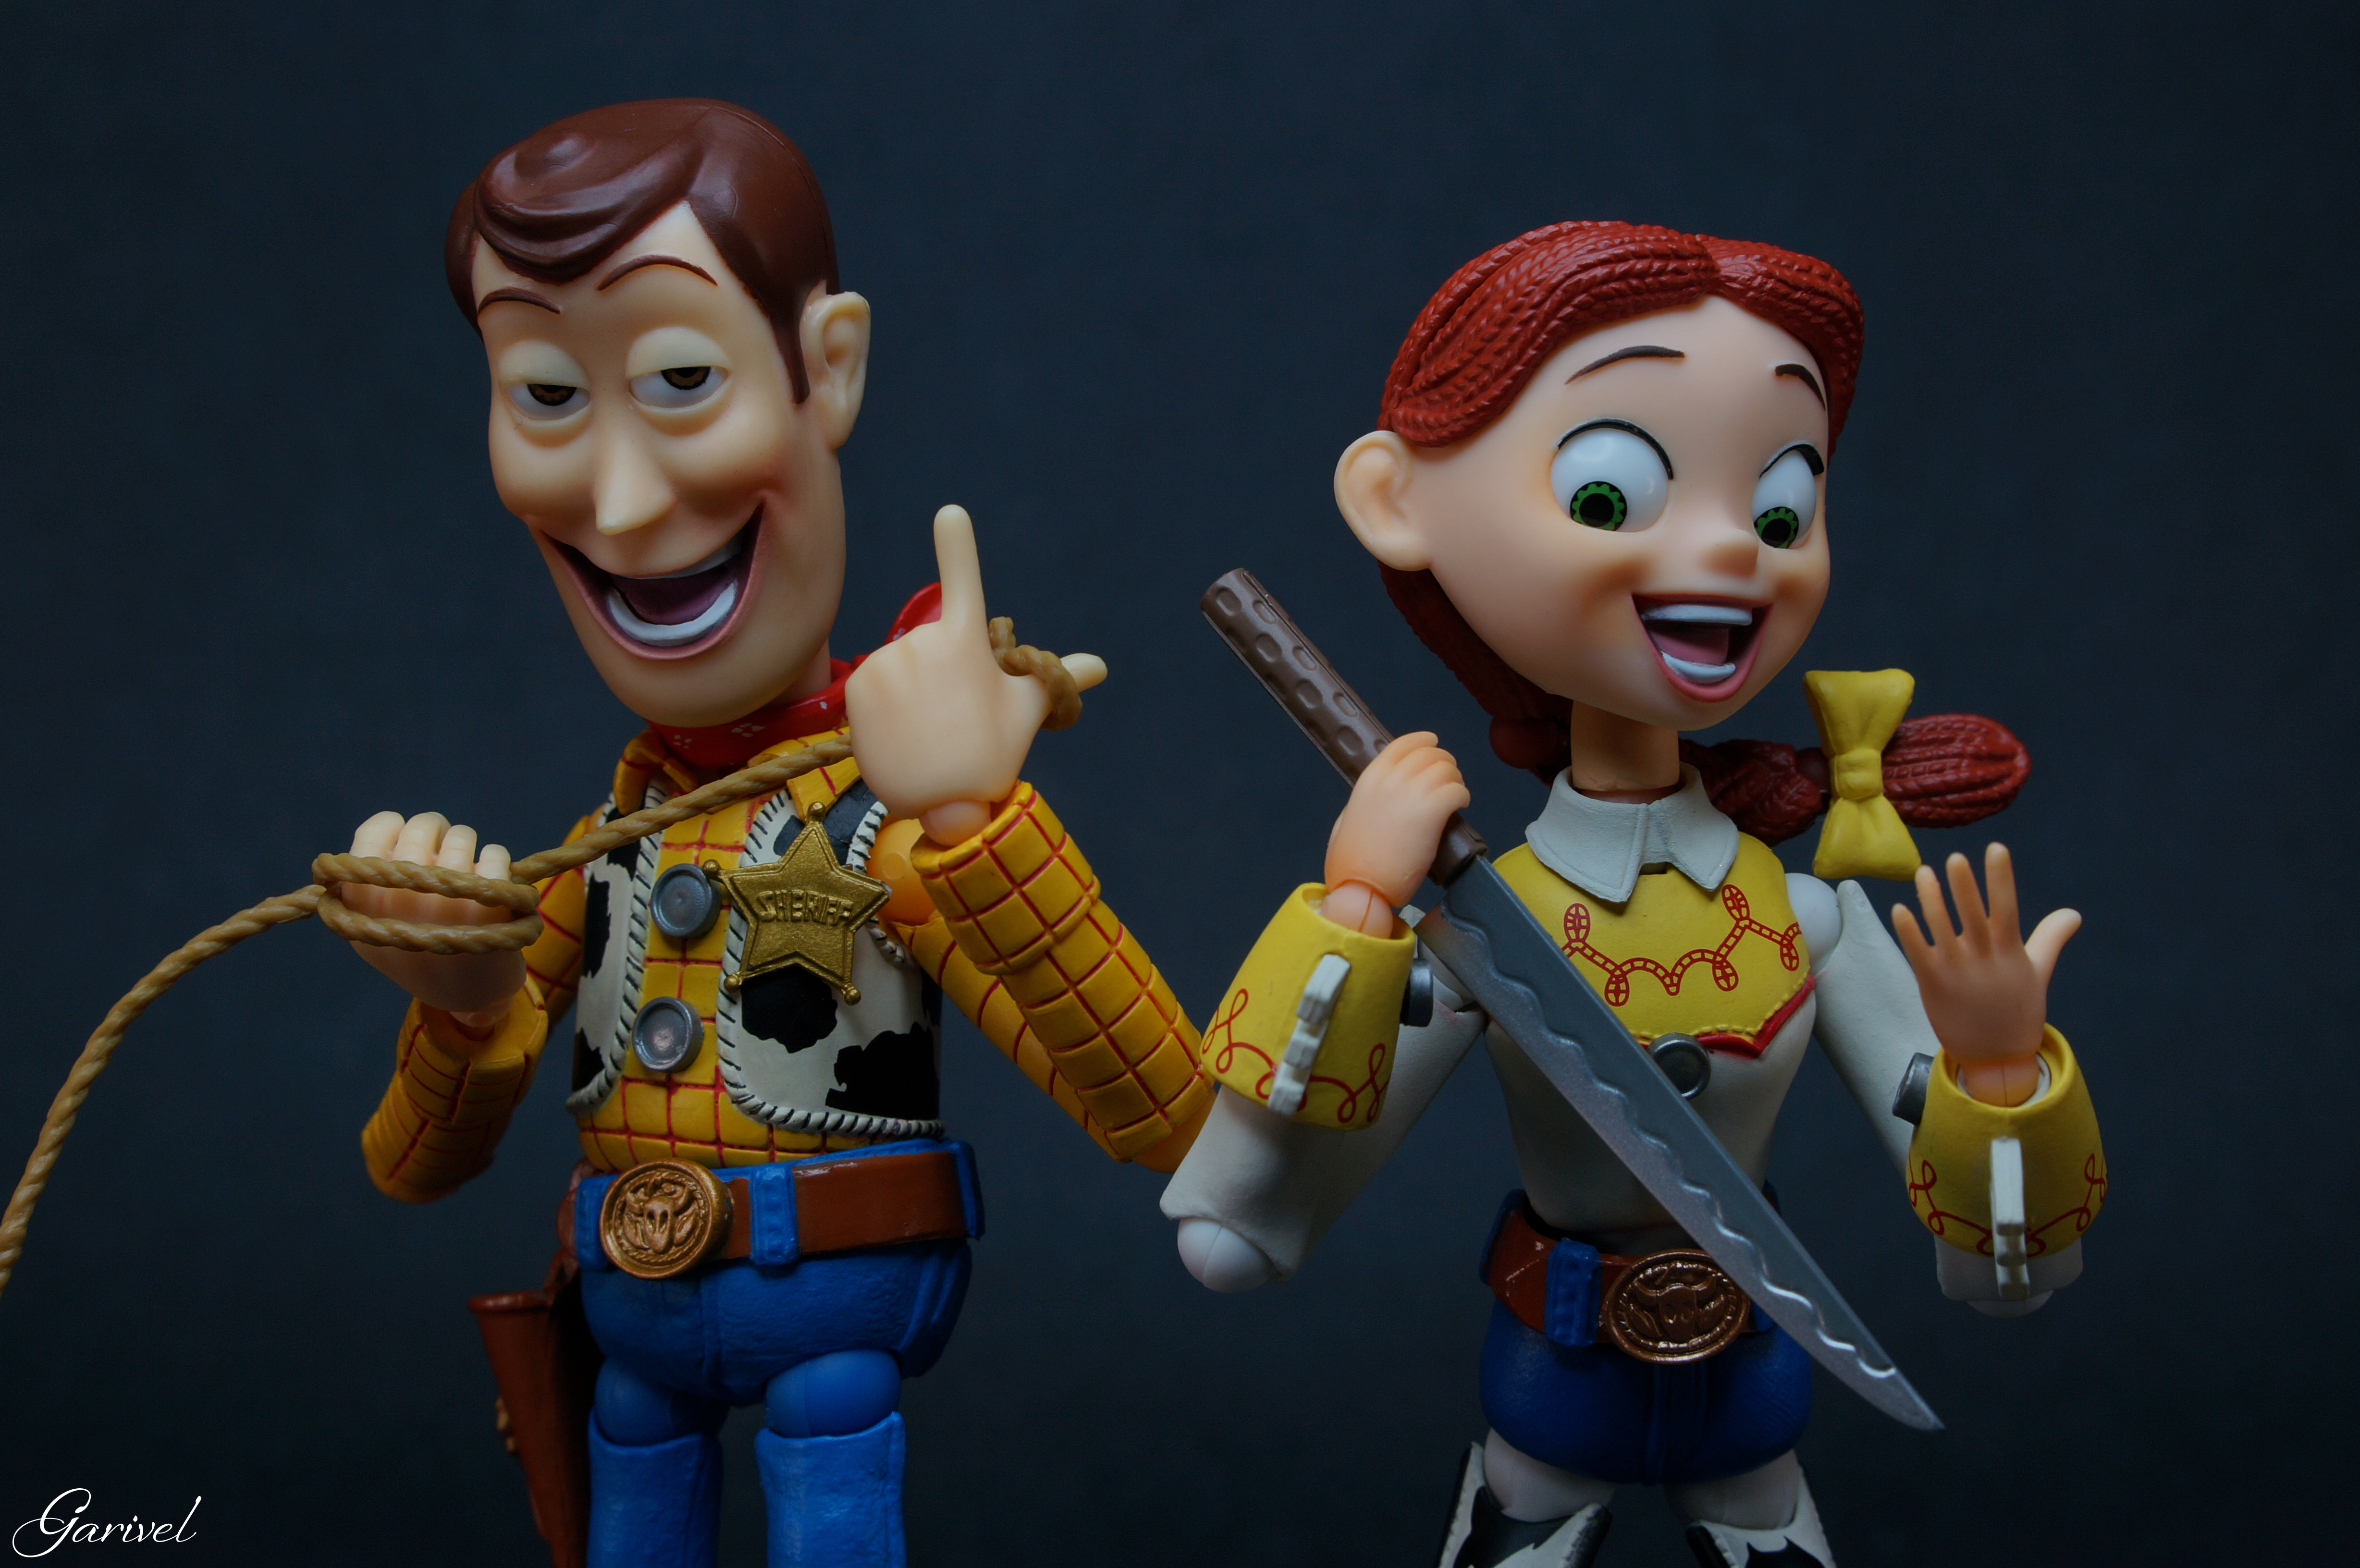 Toy story of terror 1 2 3 buzz lightyear of star command for sale -  Toy Story Of Terror By Garivel